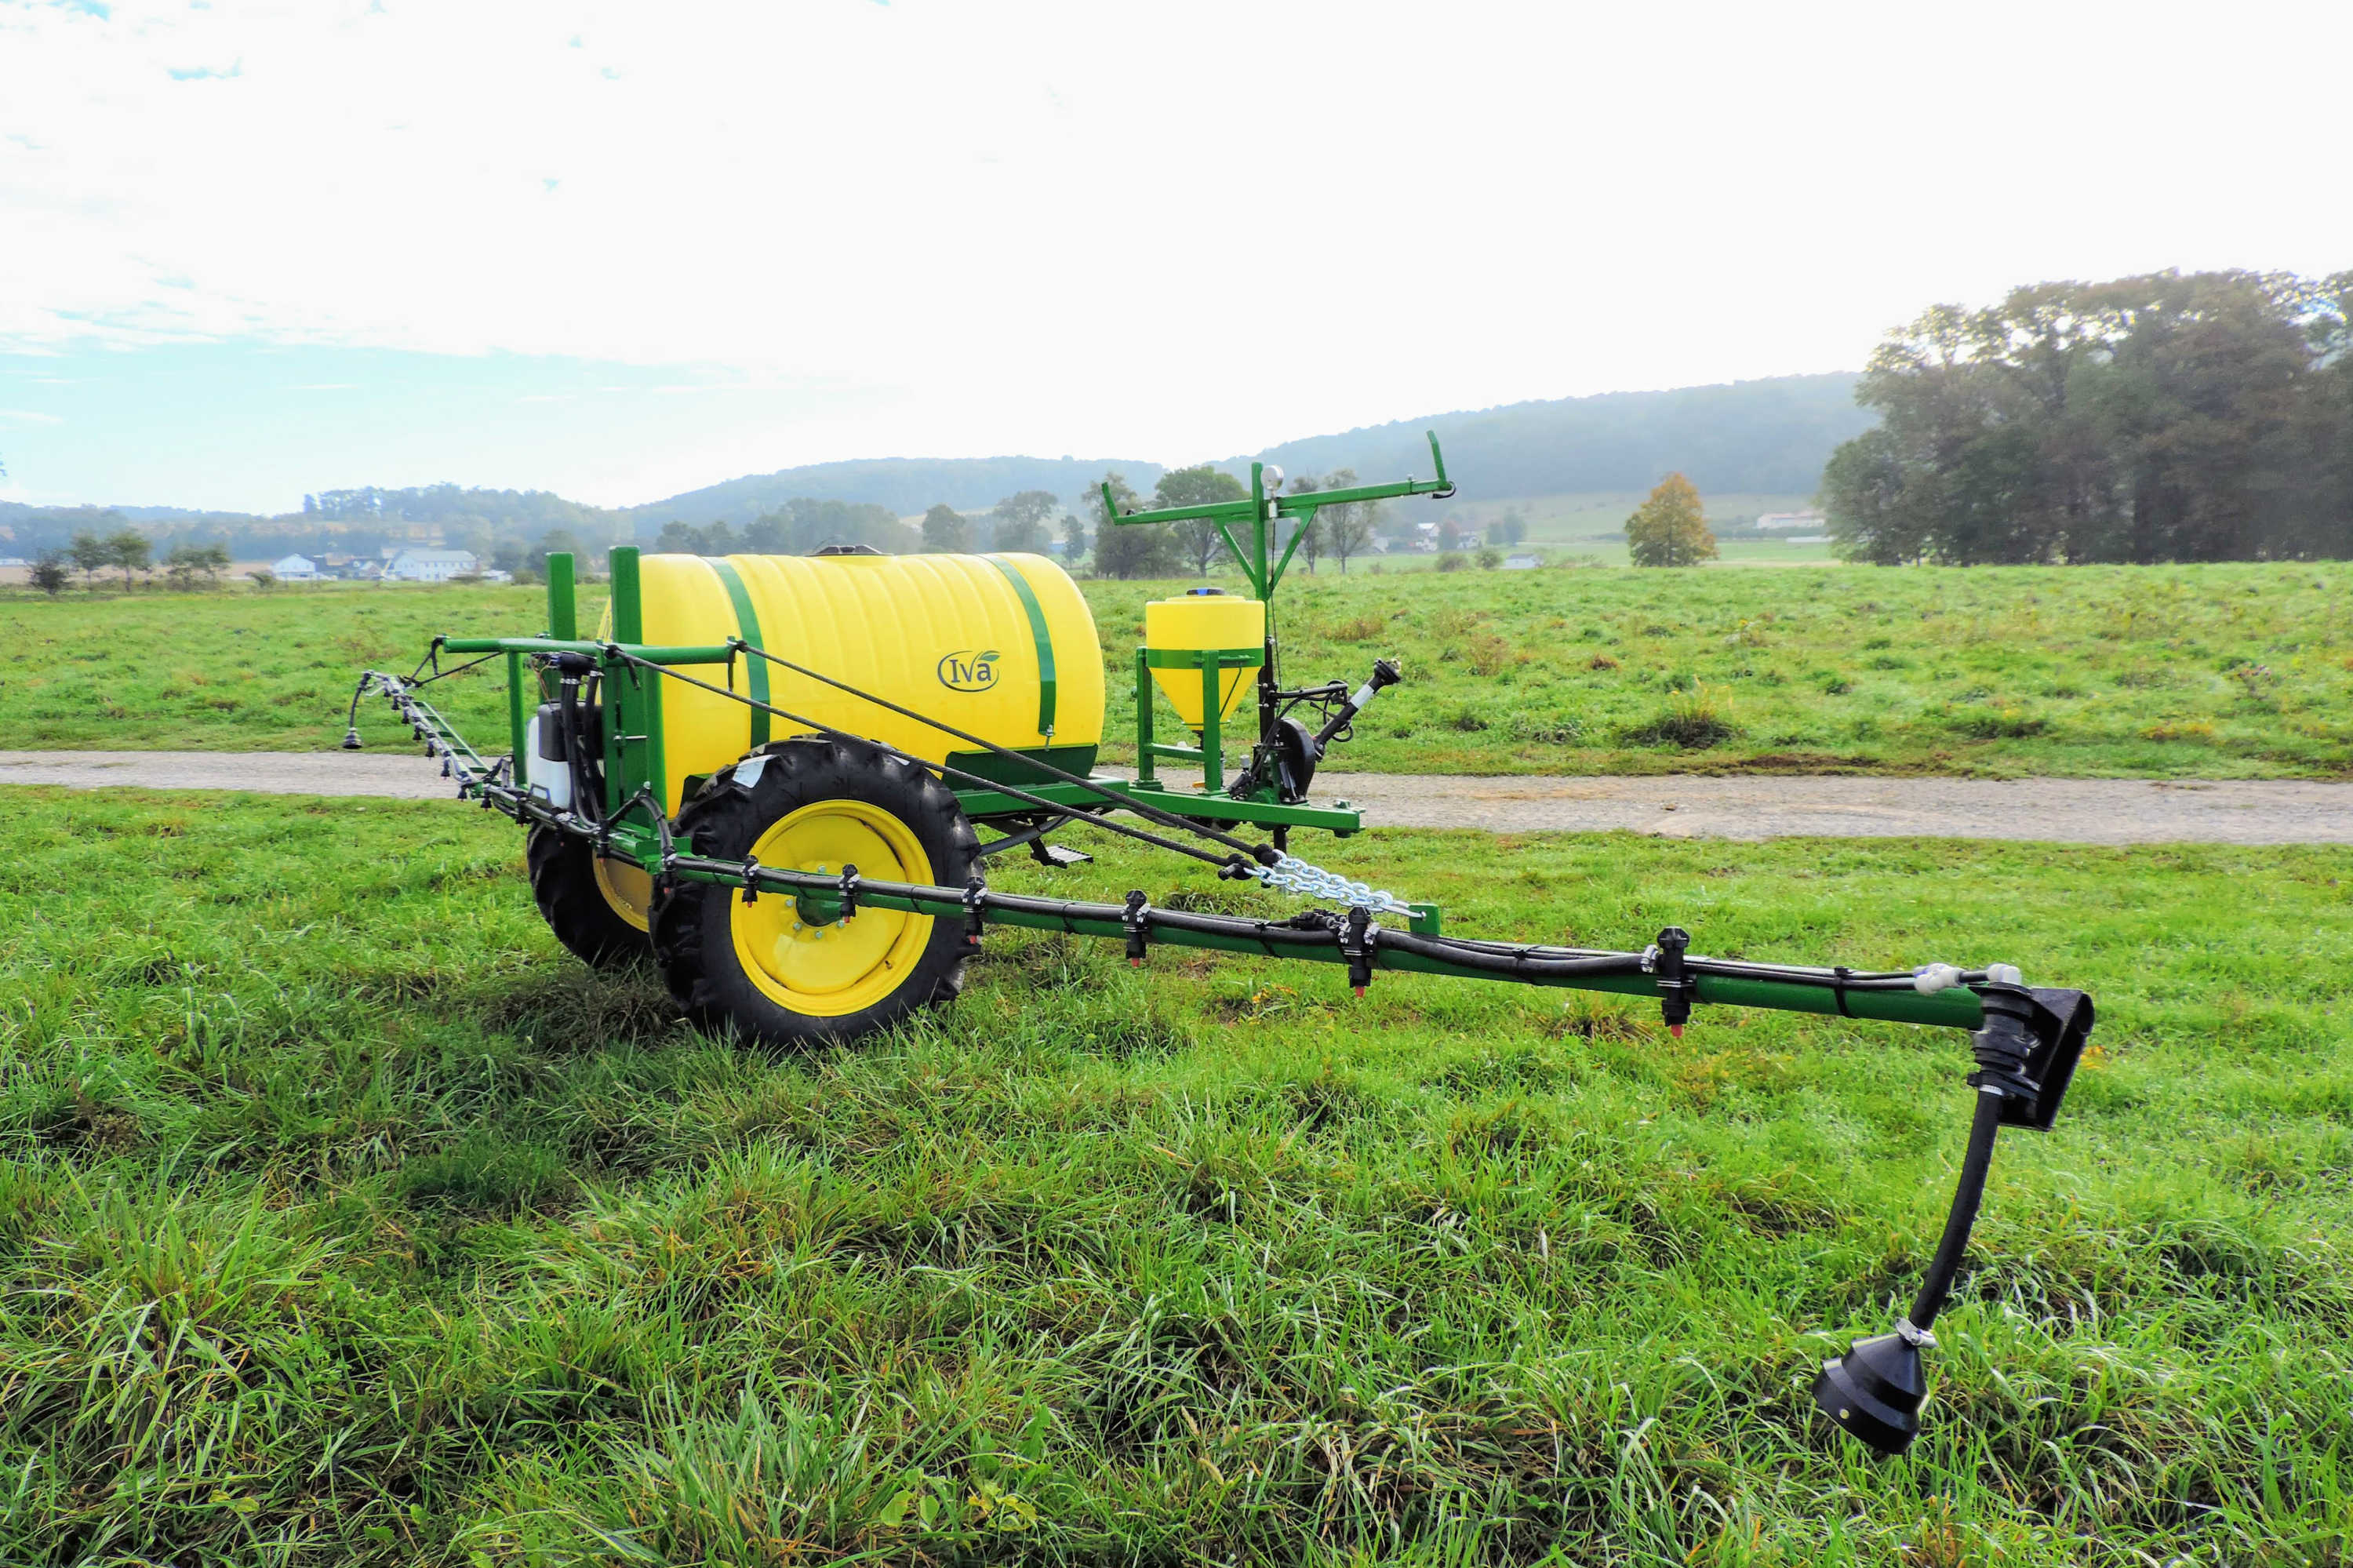 300 gallon Crop Sprayer with 30' booms 9.5-28 Tall Tires